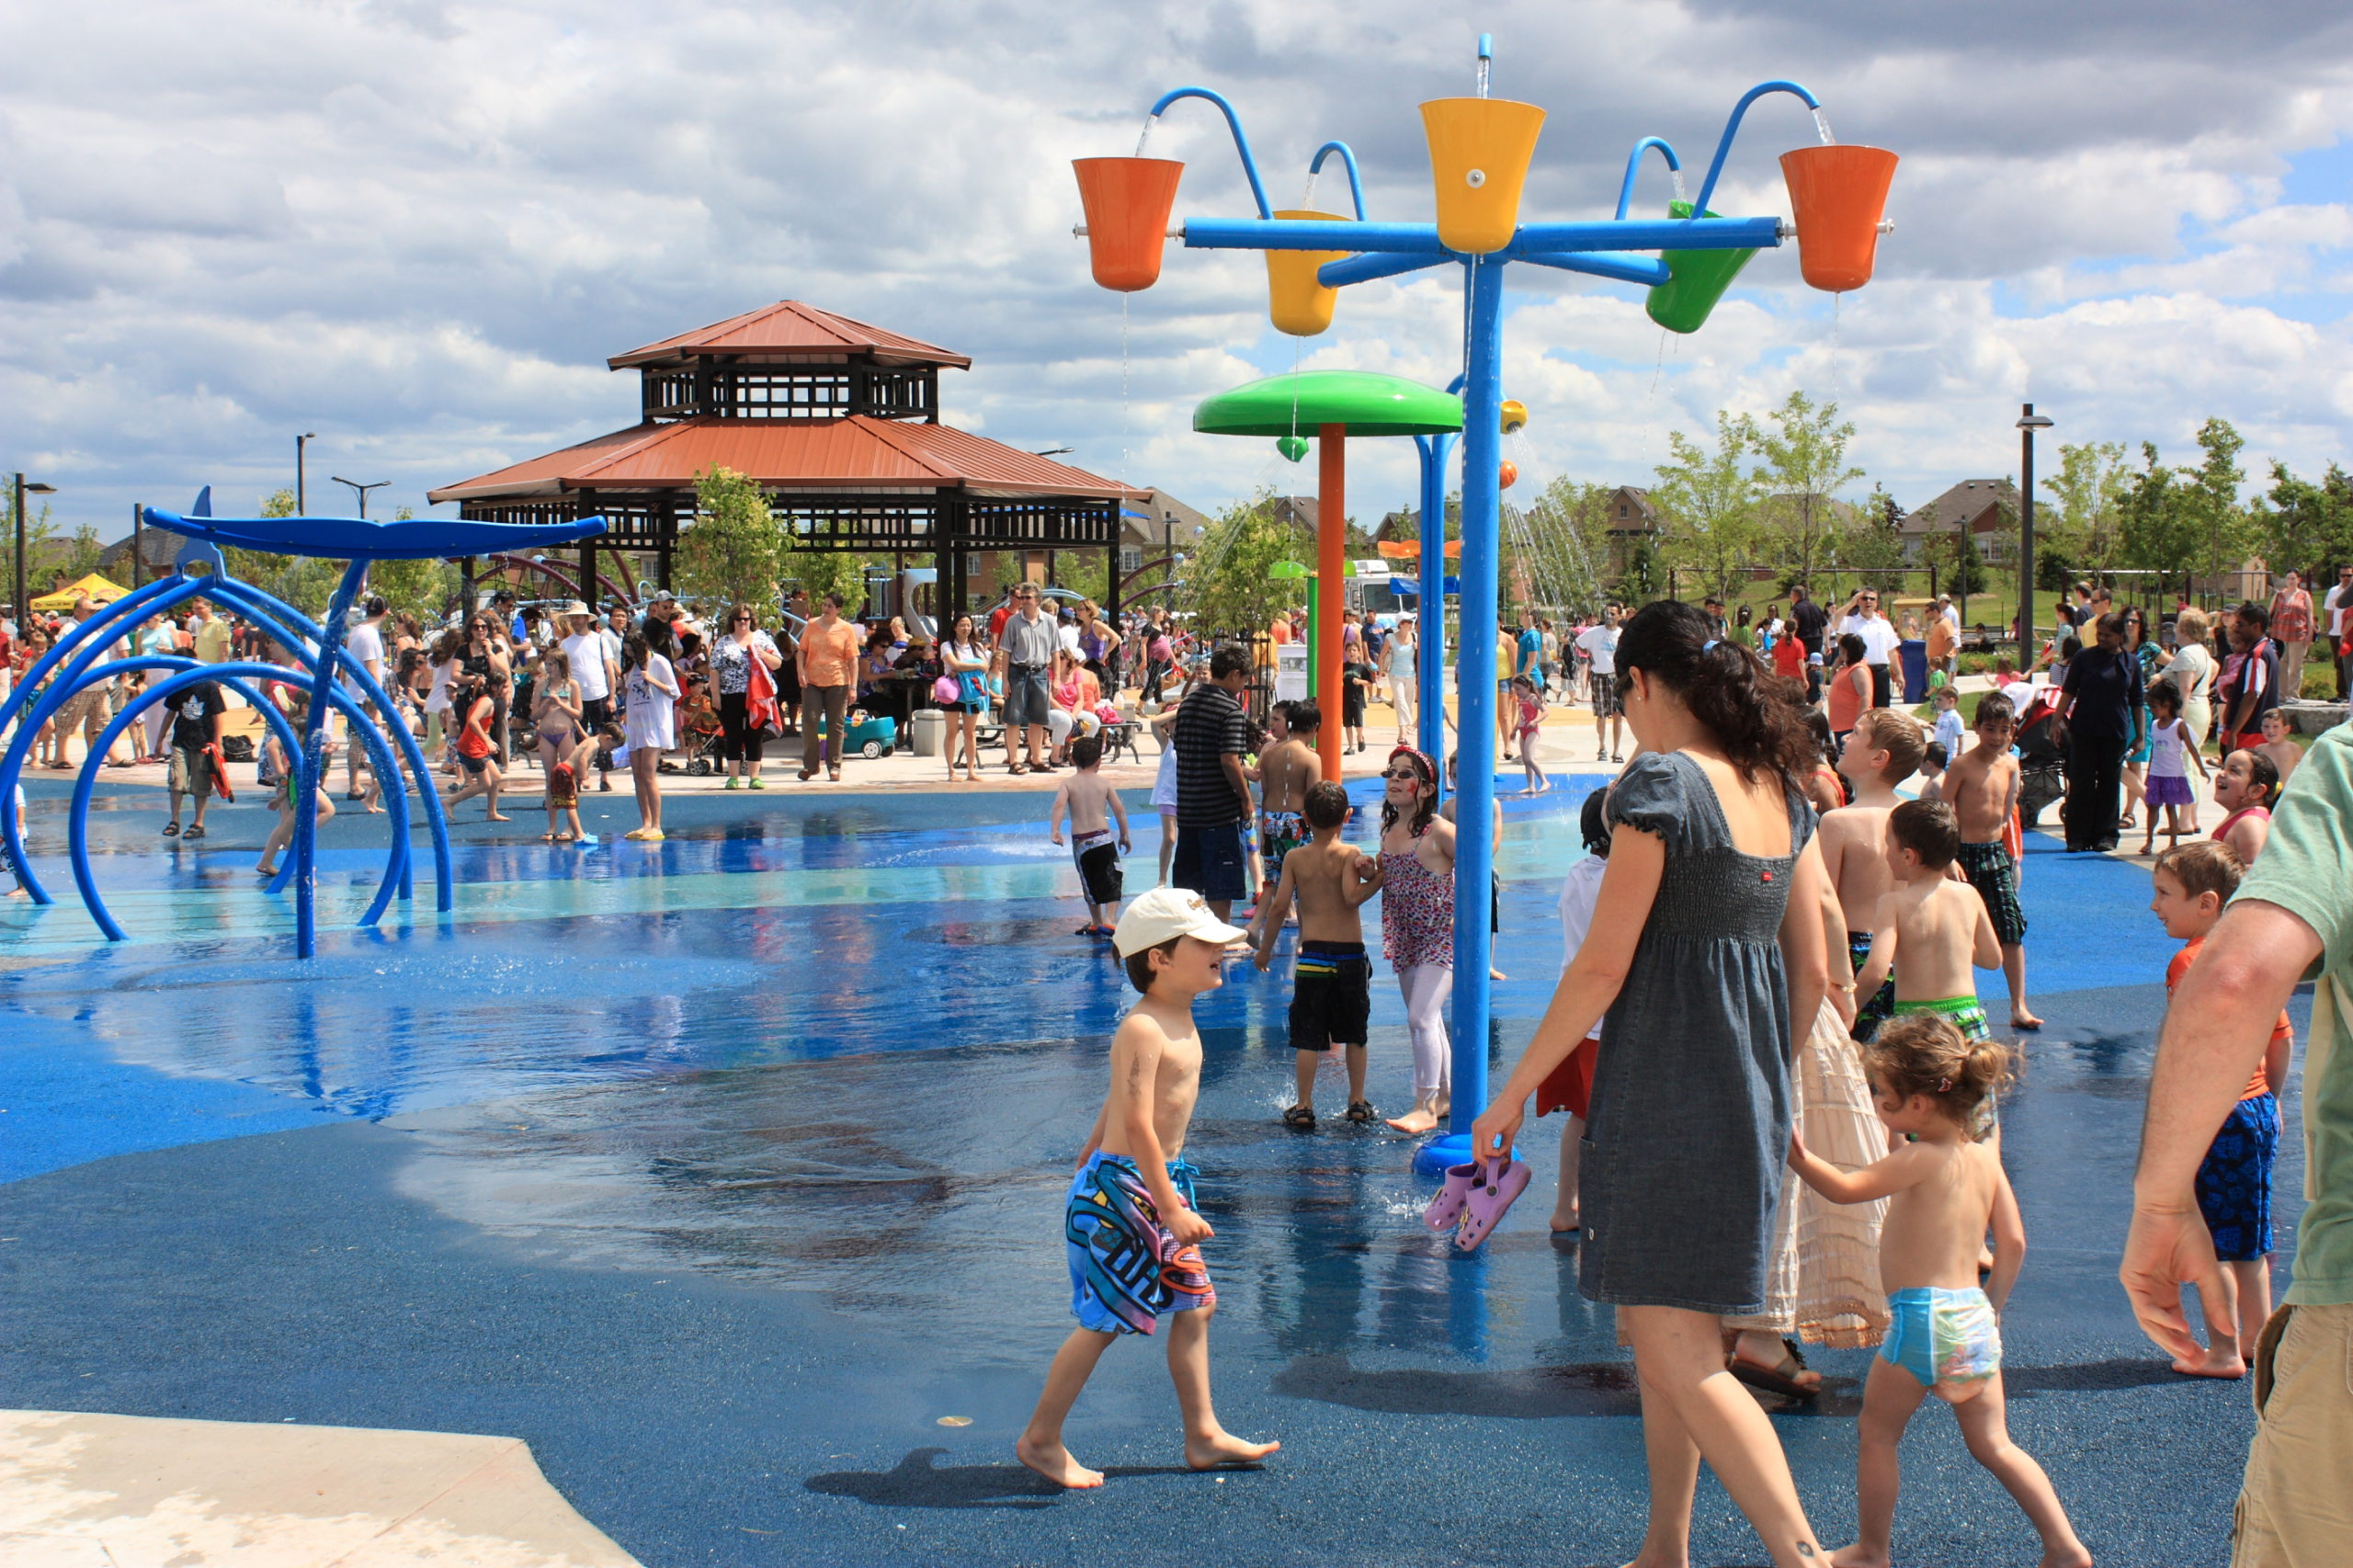 Large water park and splash pad with lots of children playing in it.